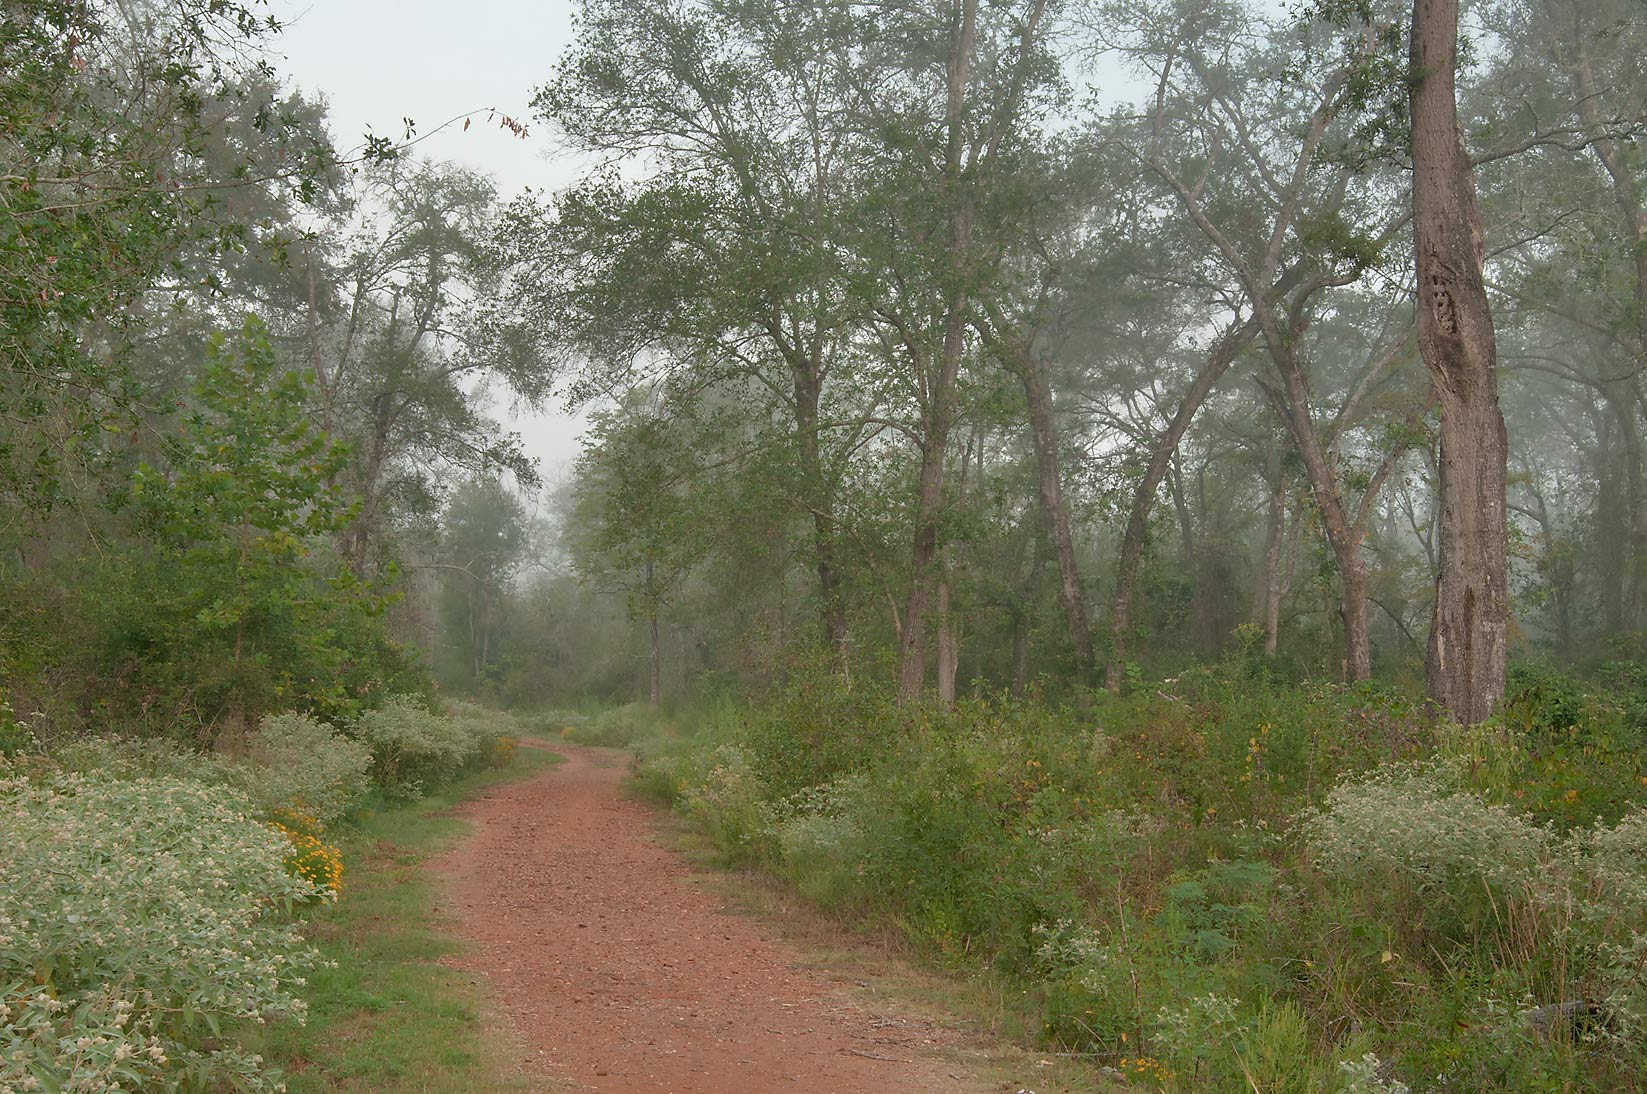 Foggy morning in Lick Creek Park. College Station, Texas